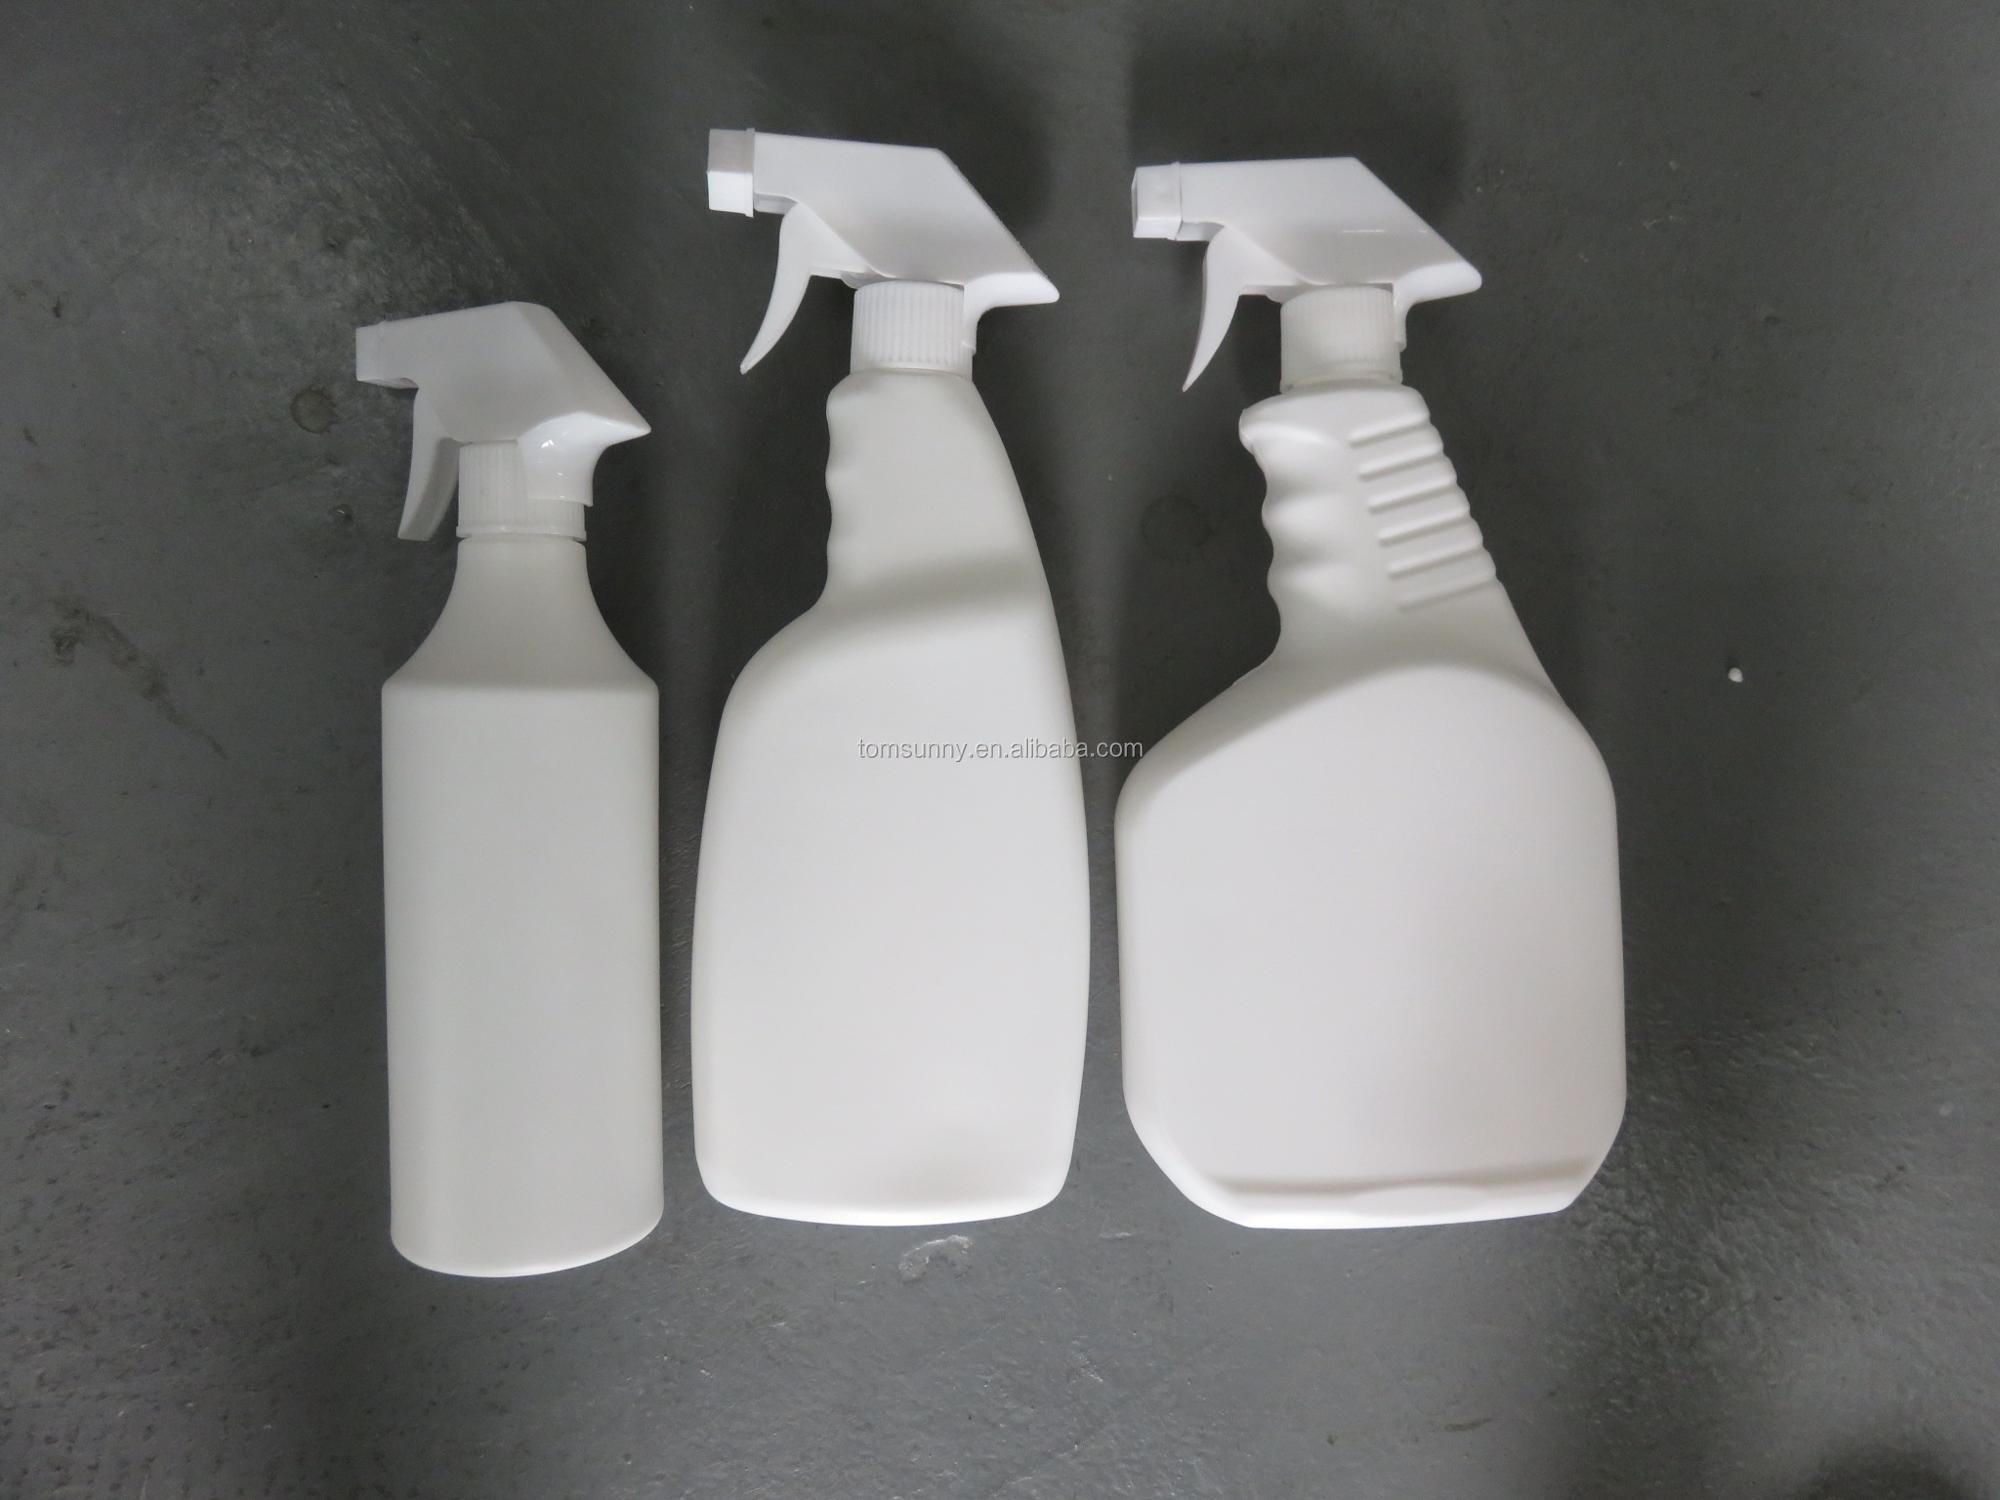 bottle with PUMP sprayer